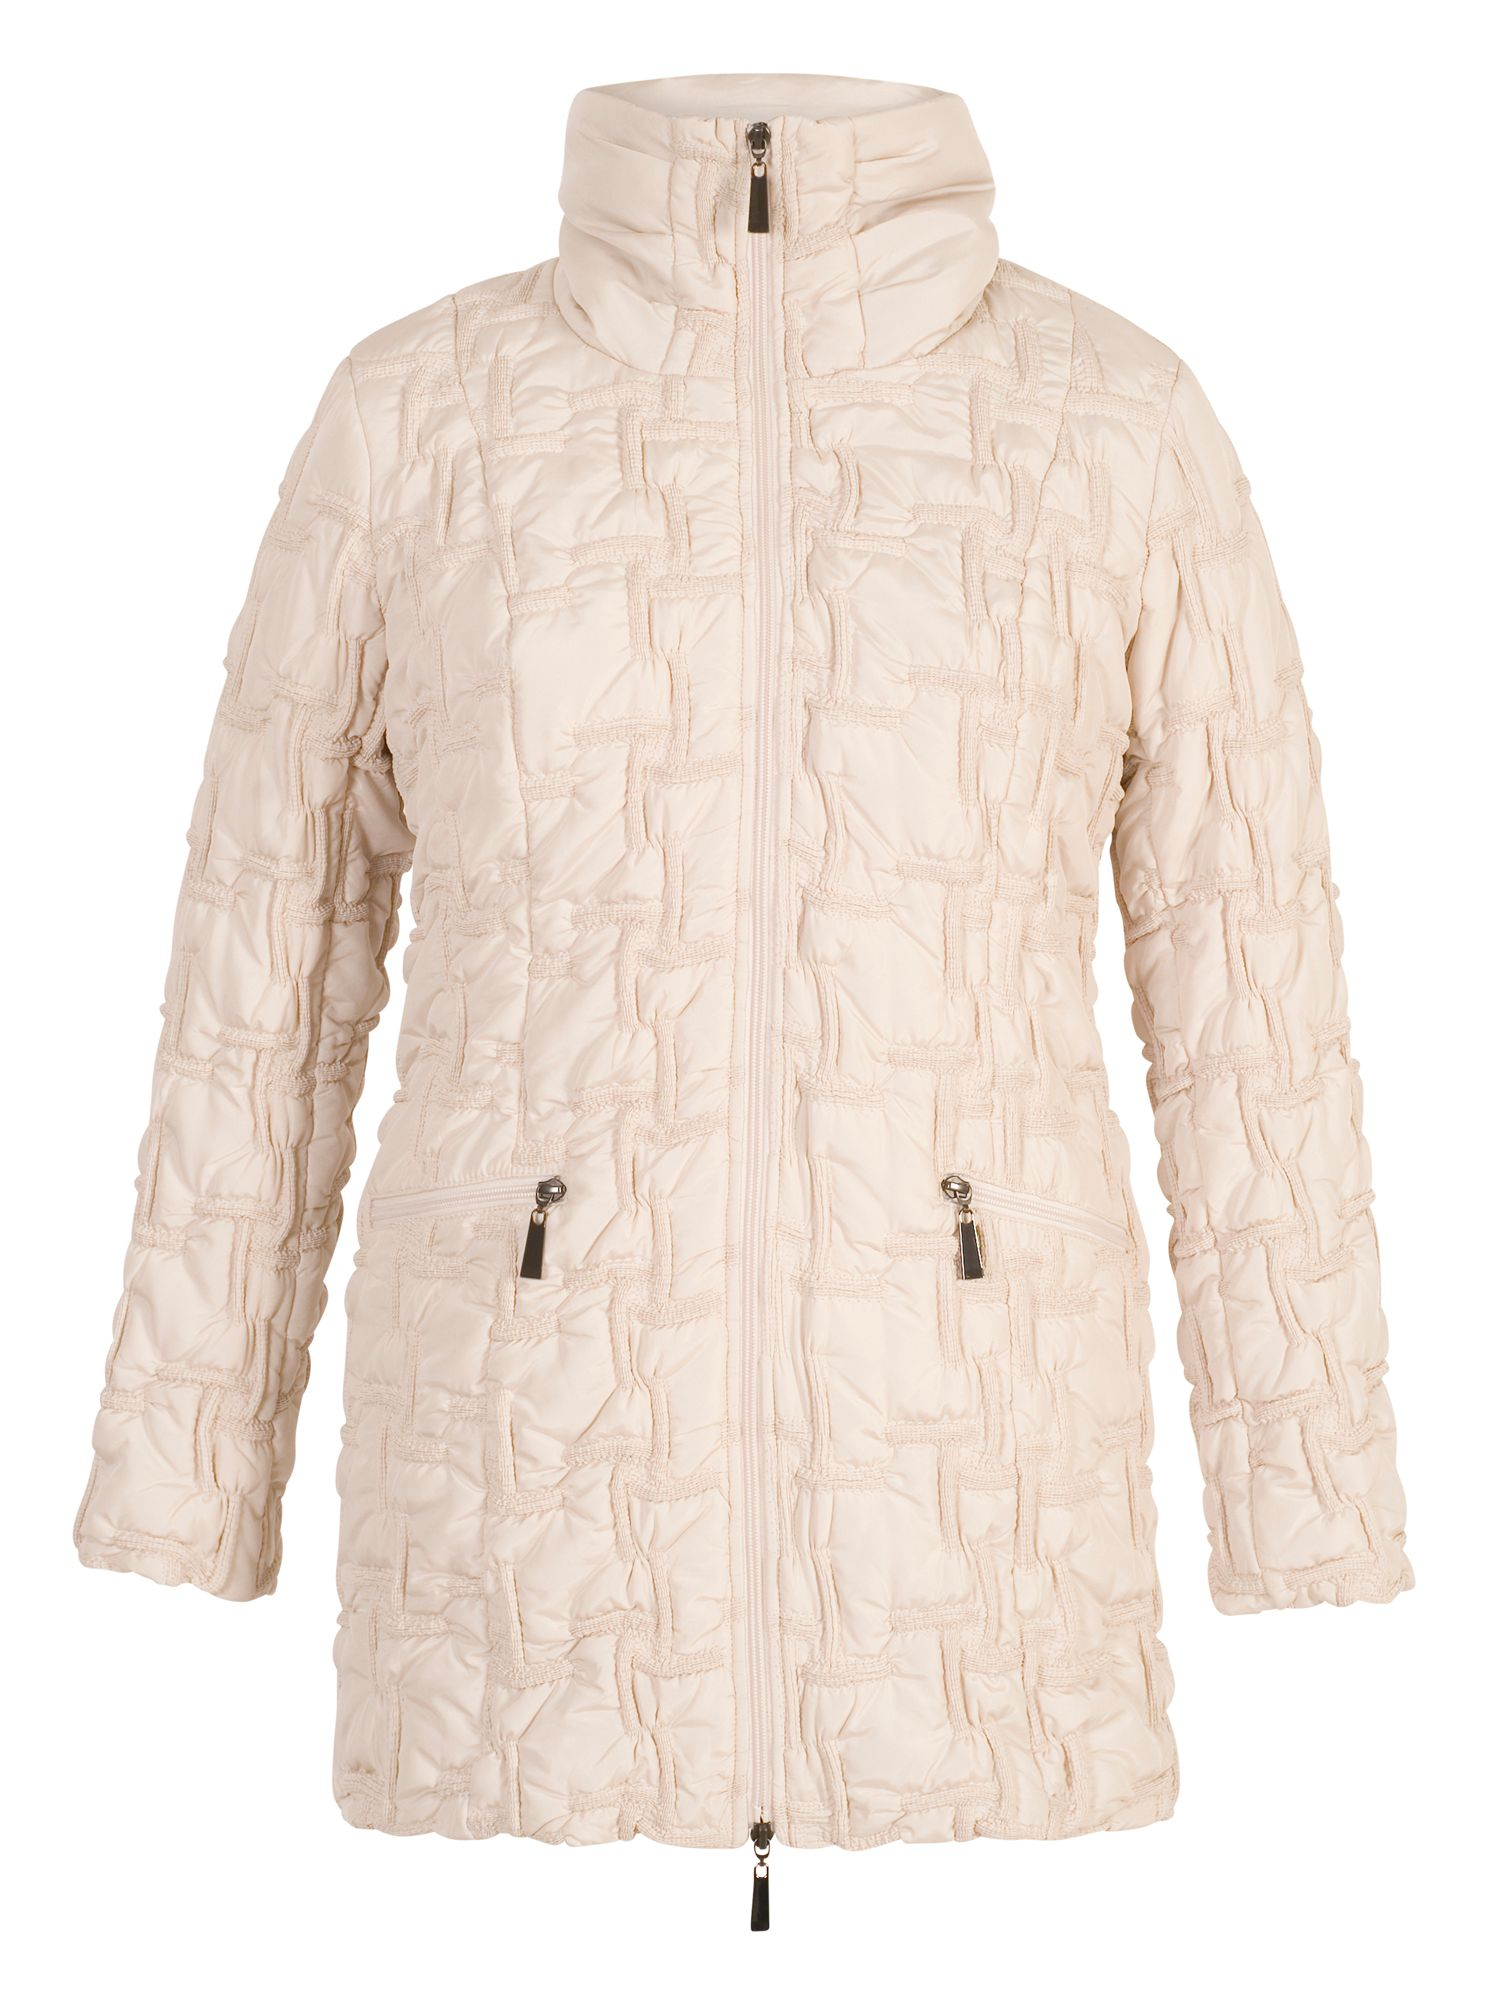 Chesca Bonfire Coat, Cream